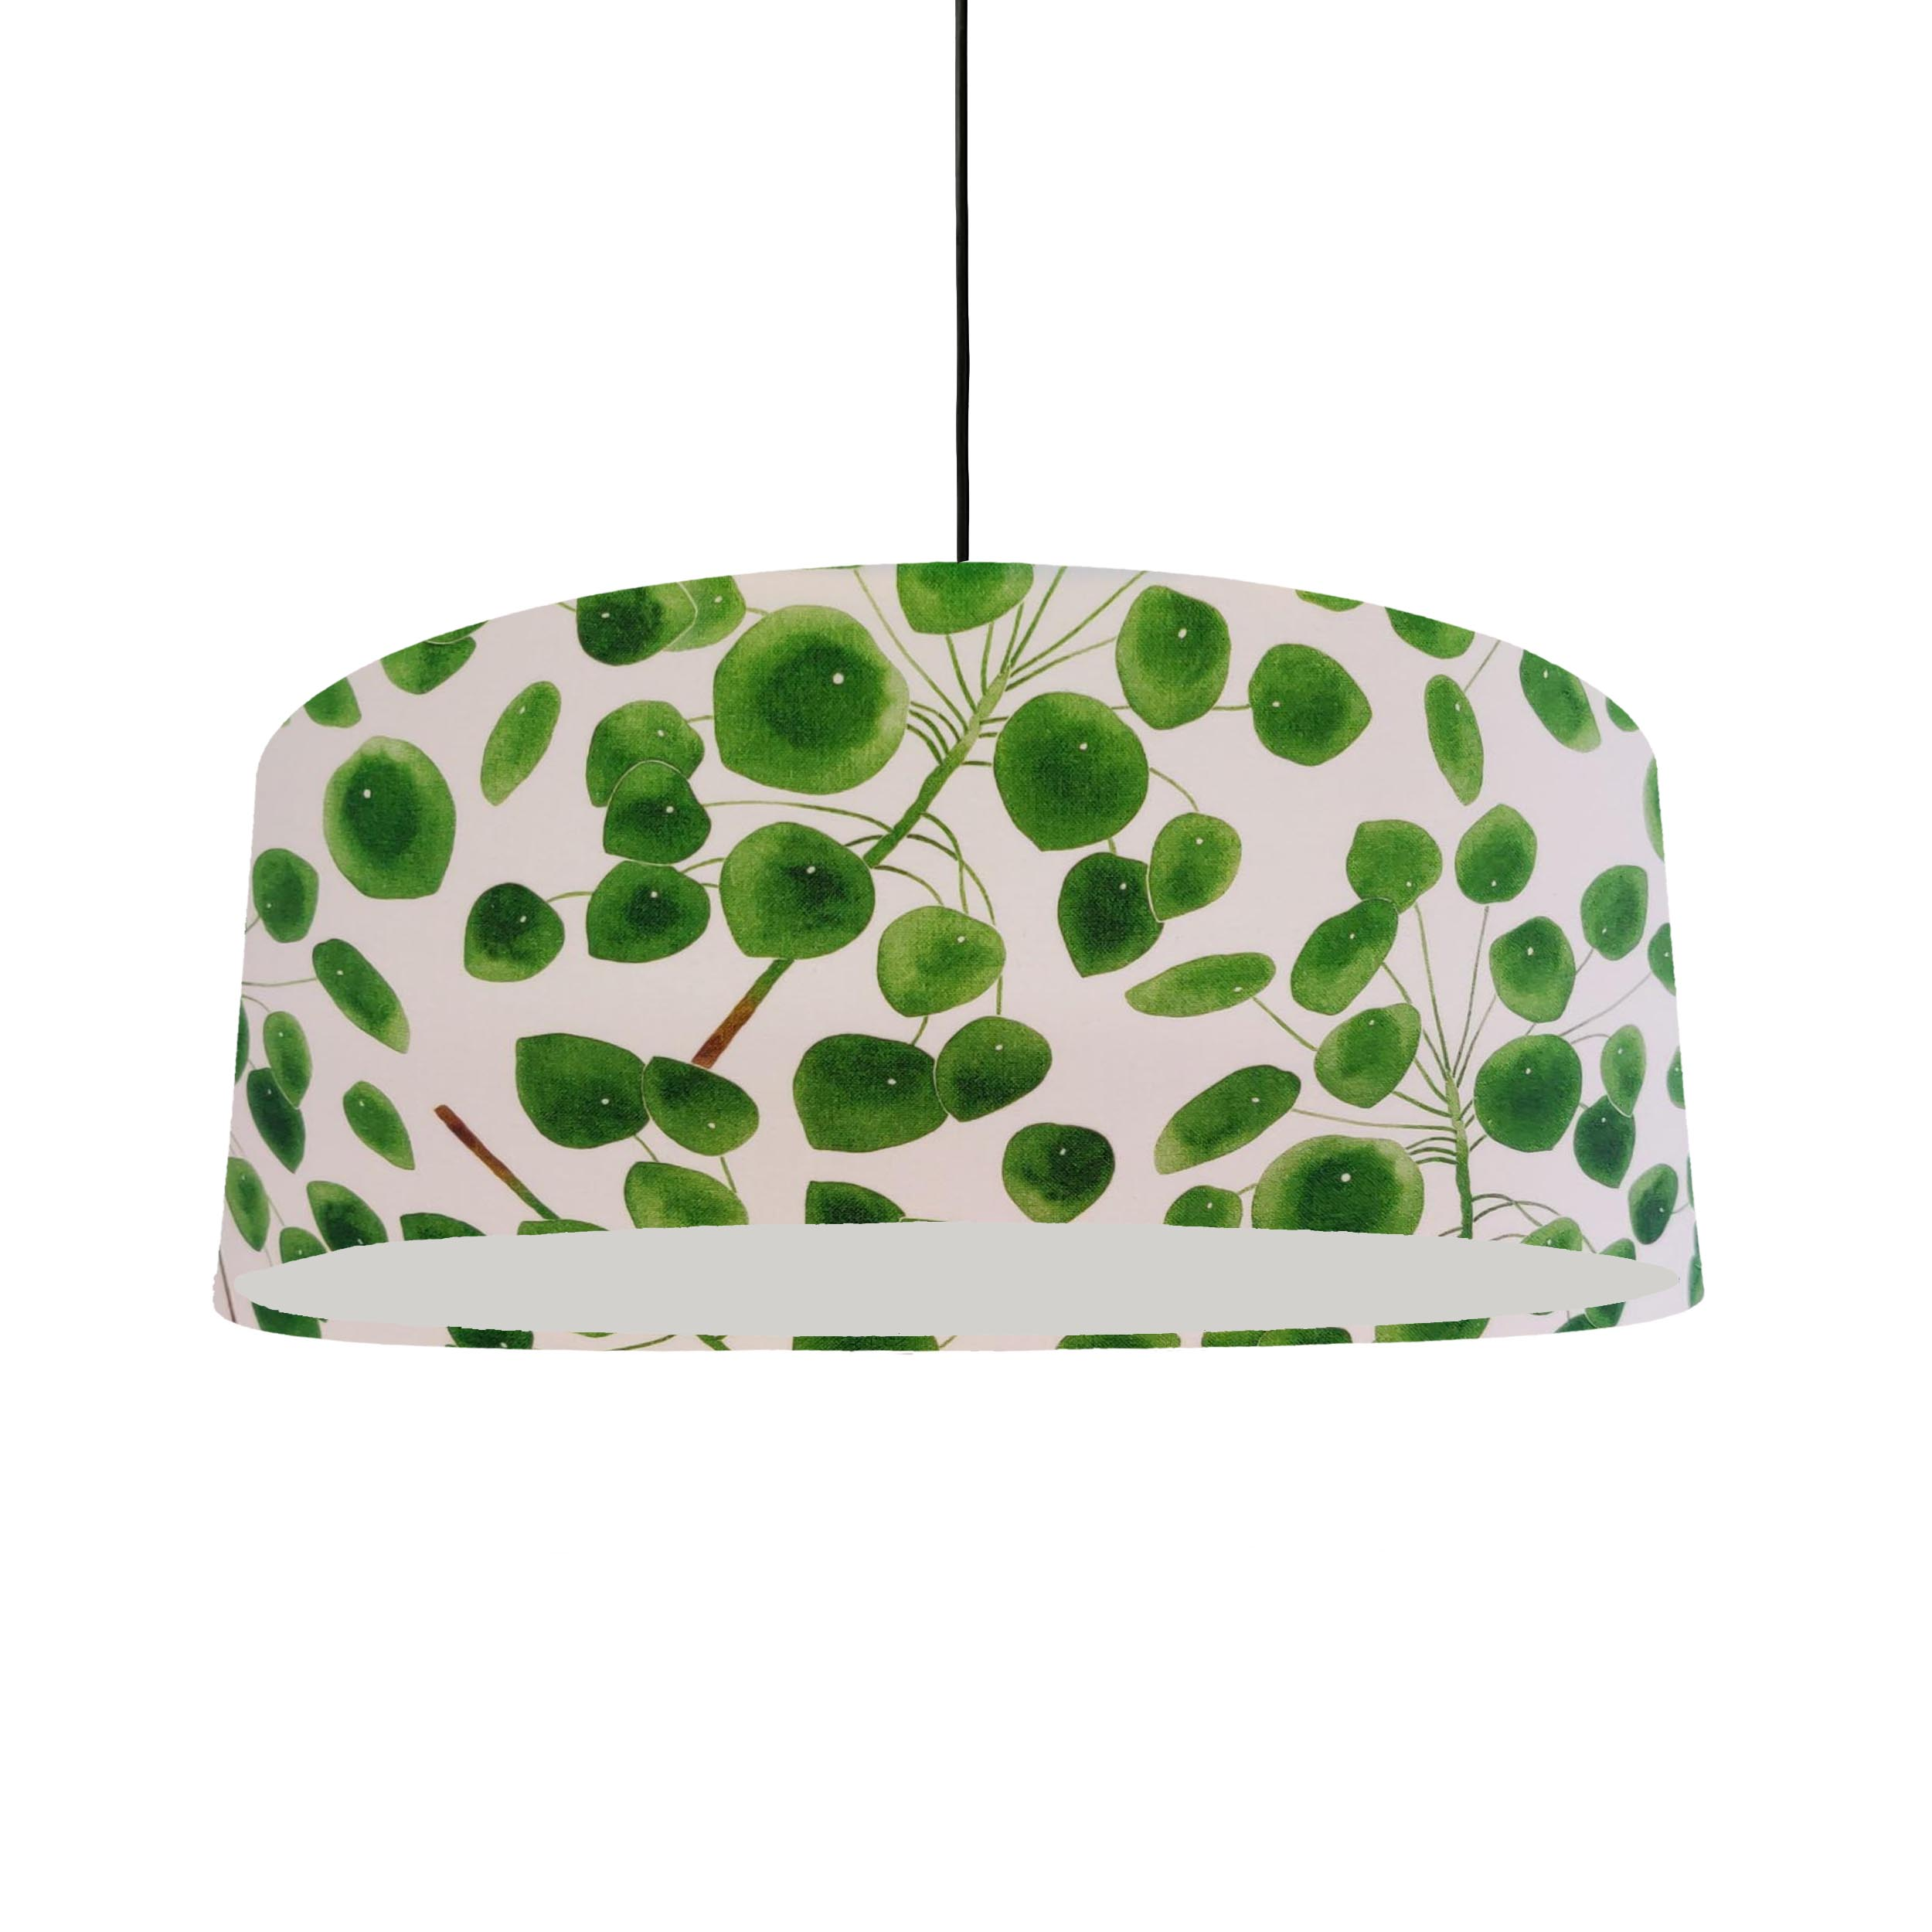 Extra Large Eucalyptus Leaves Lampshade in White and Green